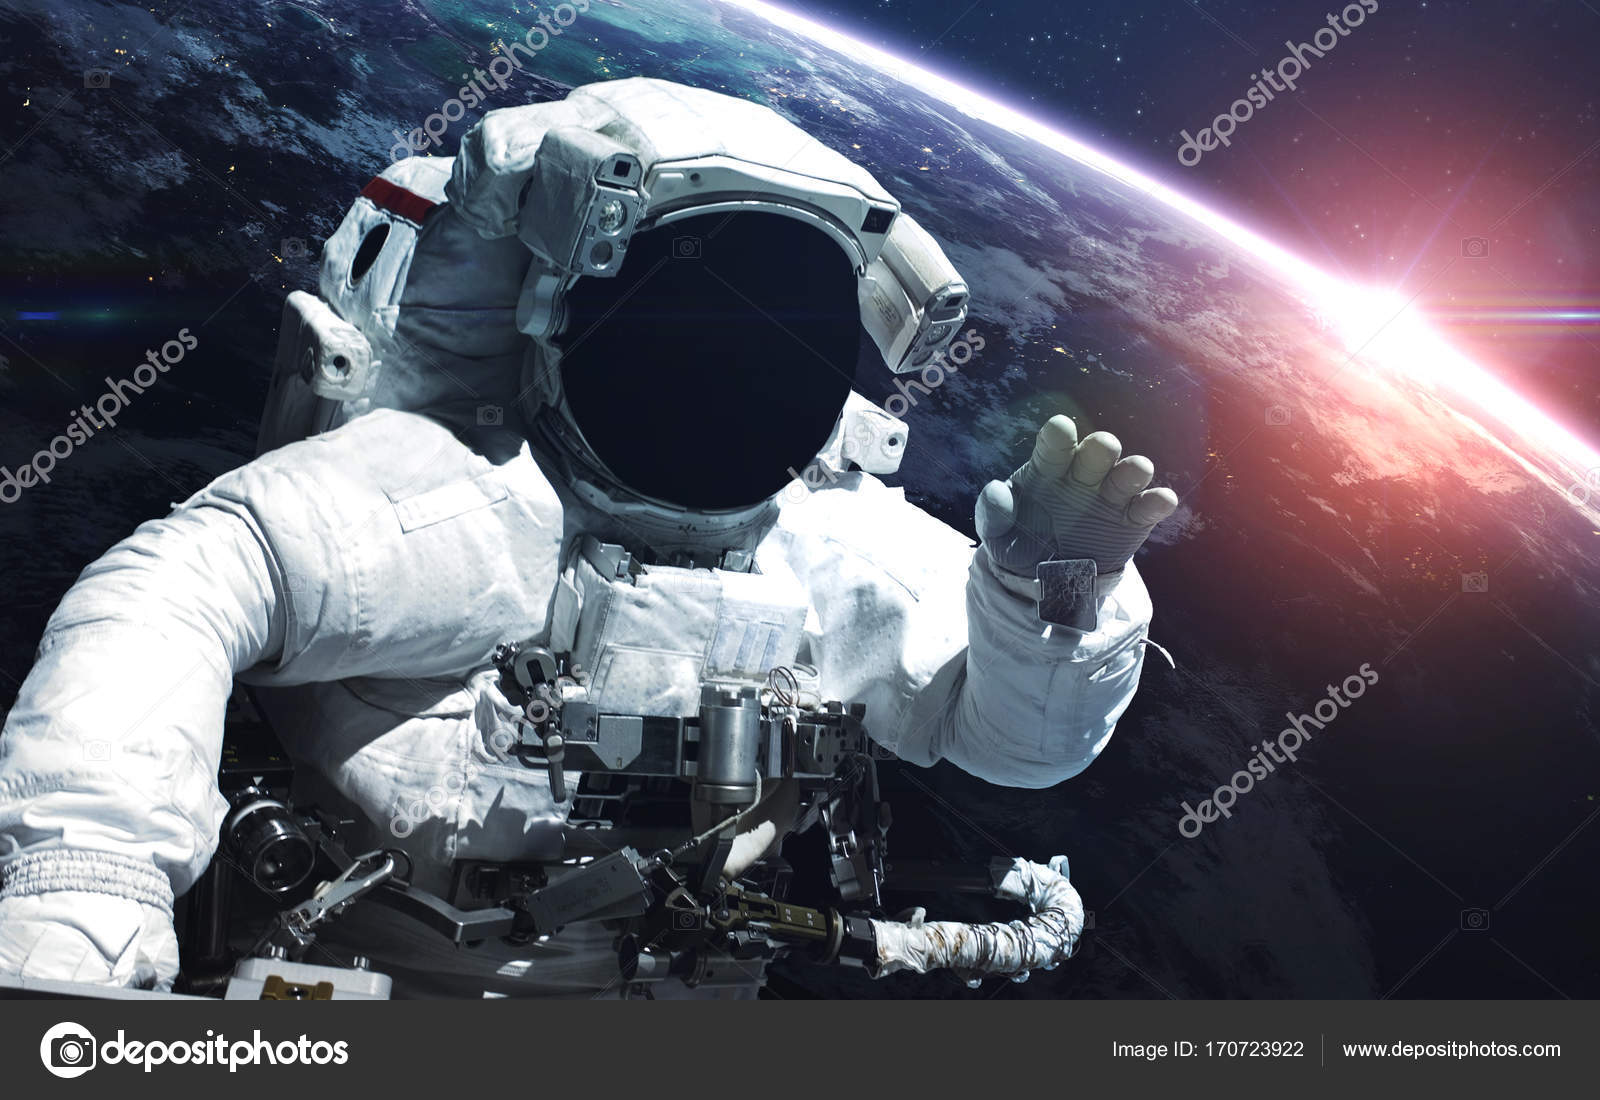 Images Astronaut Wallpaper Astronaut Abstract Space